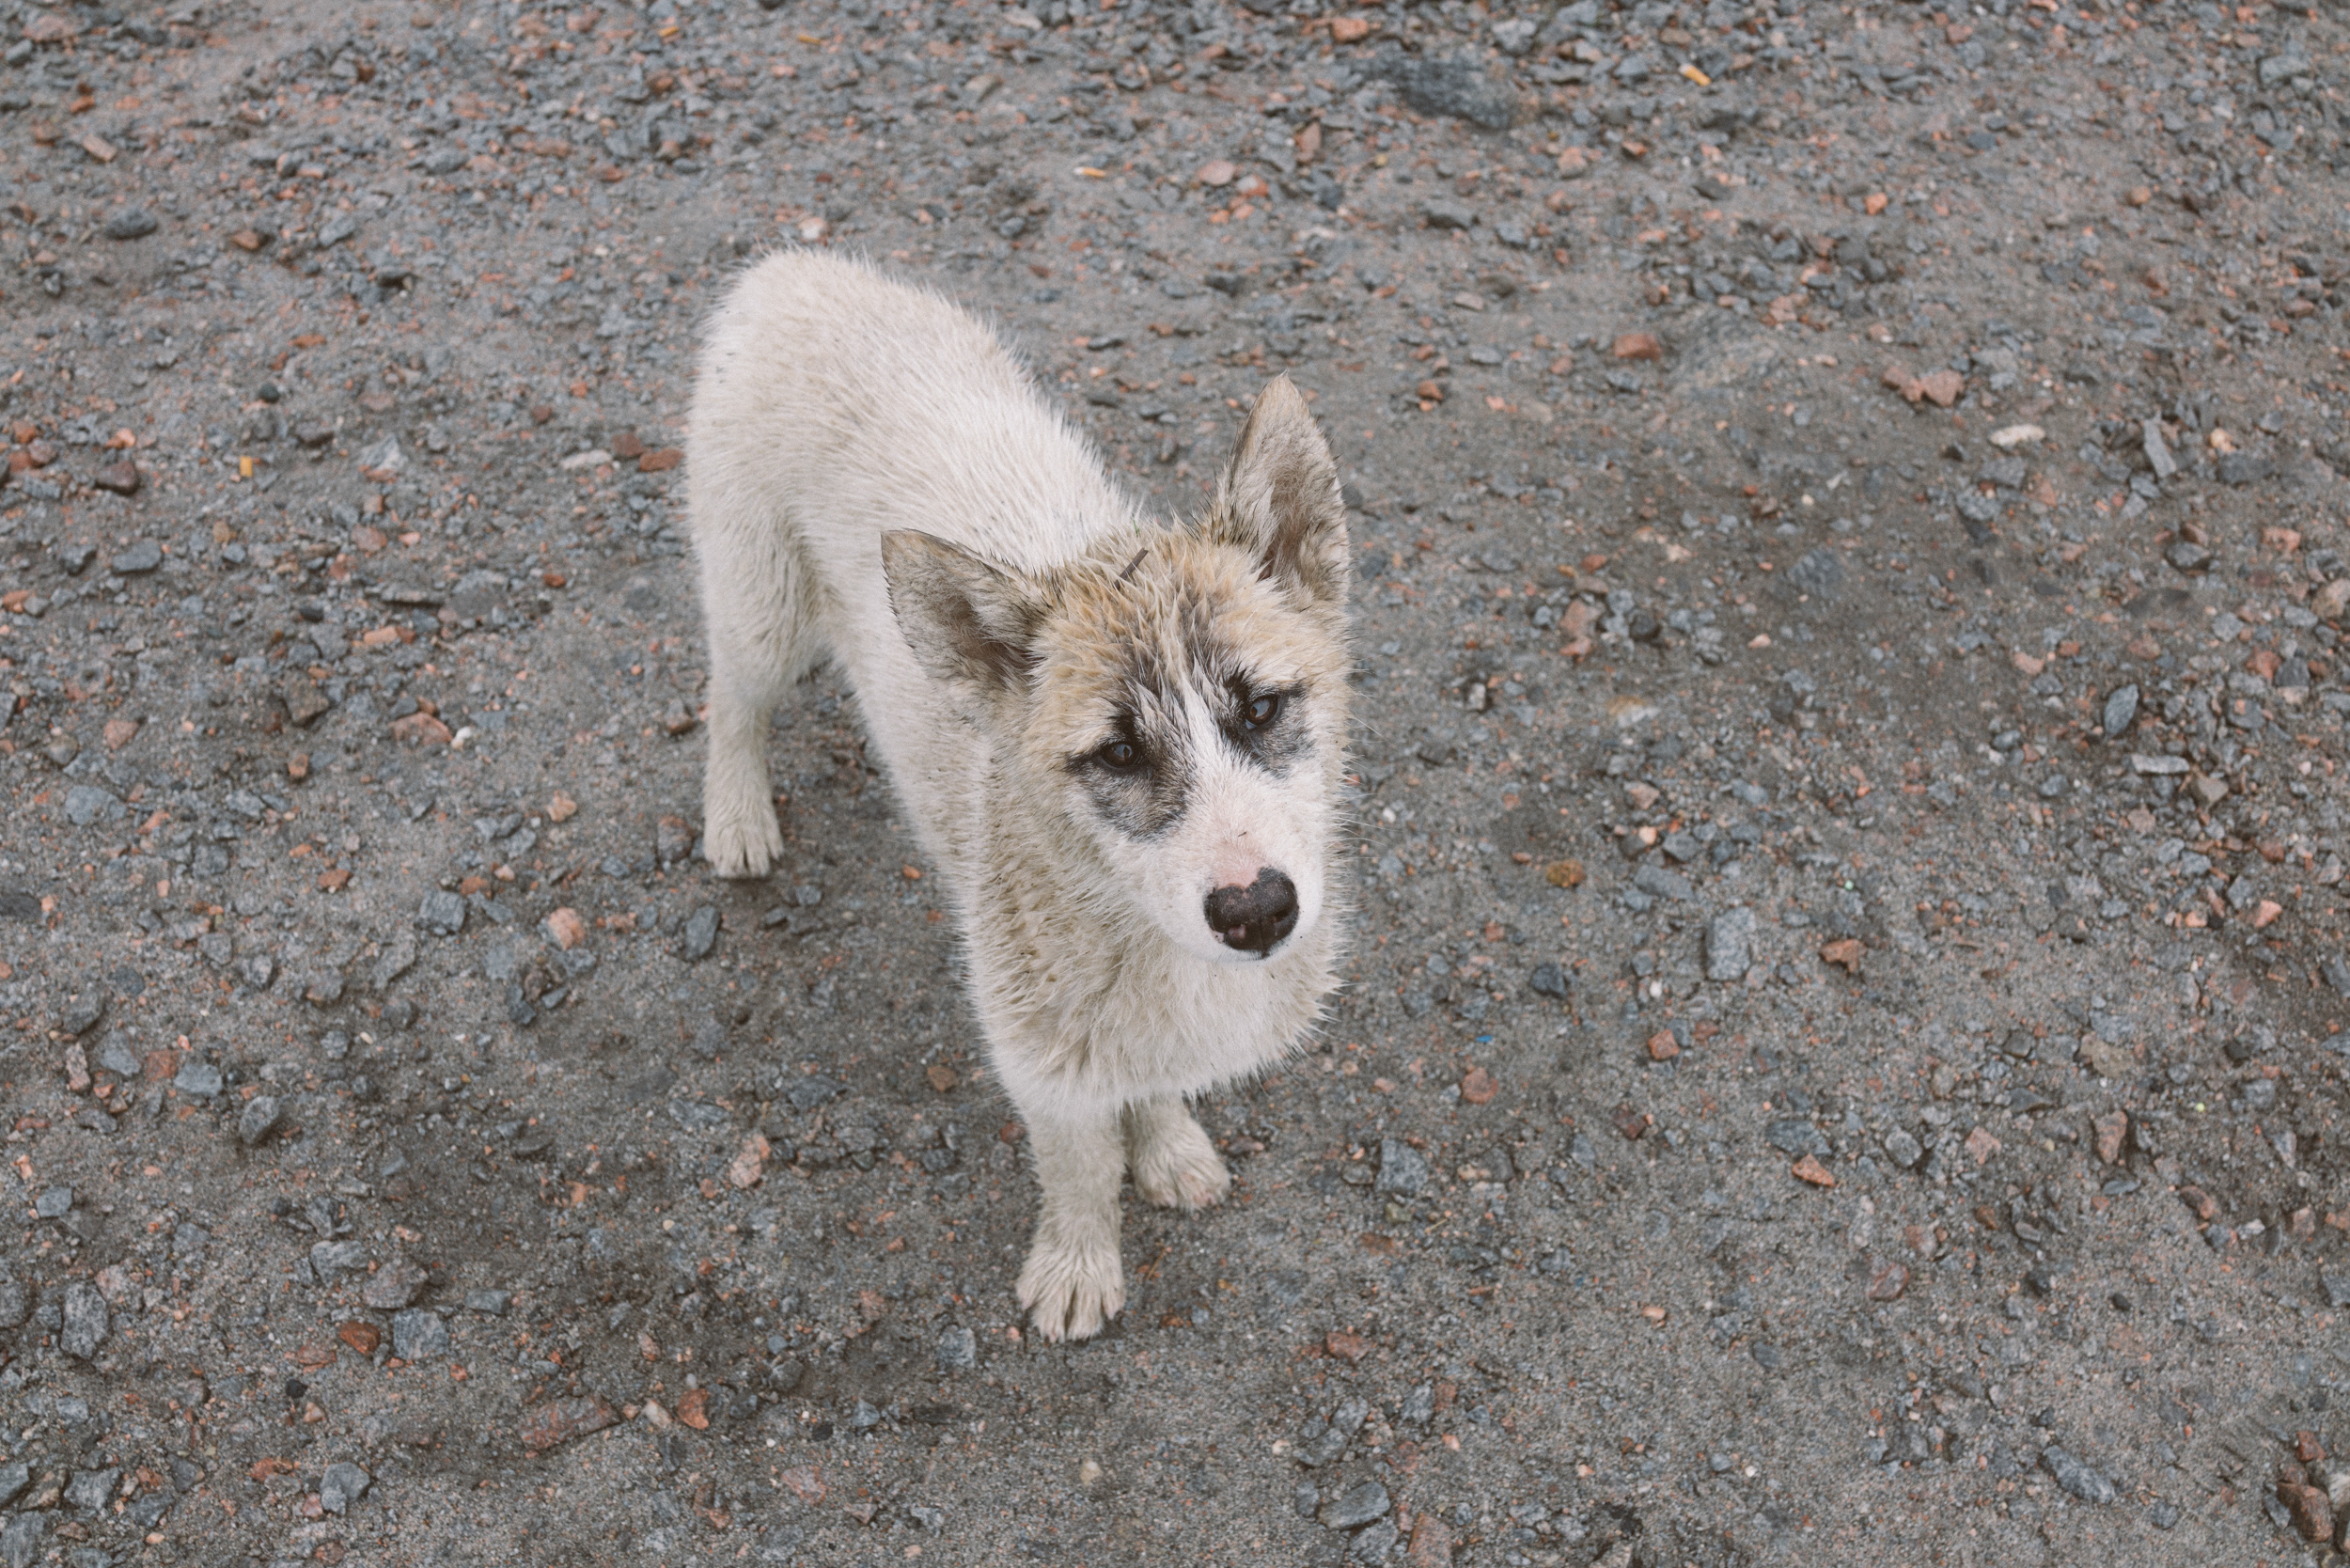 A very sweet sled dog pup. This friendly puppy and his litter-mate were outside our apartment so we broke the rules a little and gave them some pets. Adorable as they were, they smelled like rotten fish (sled dogs are fed fish scraps and seal meat).